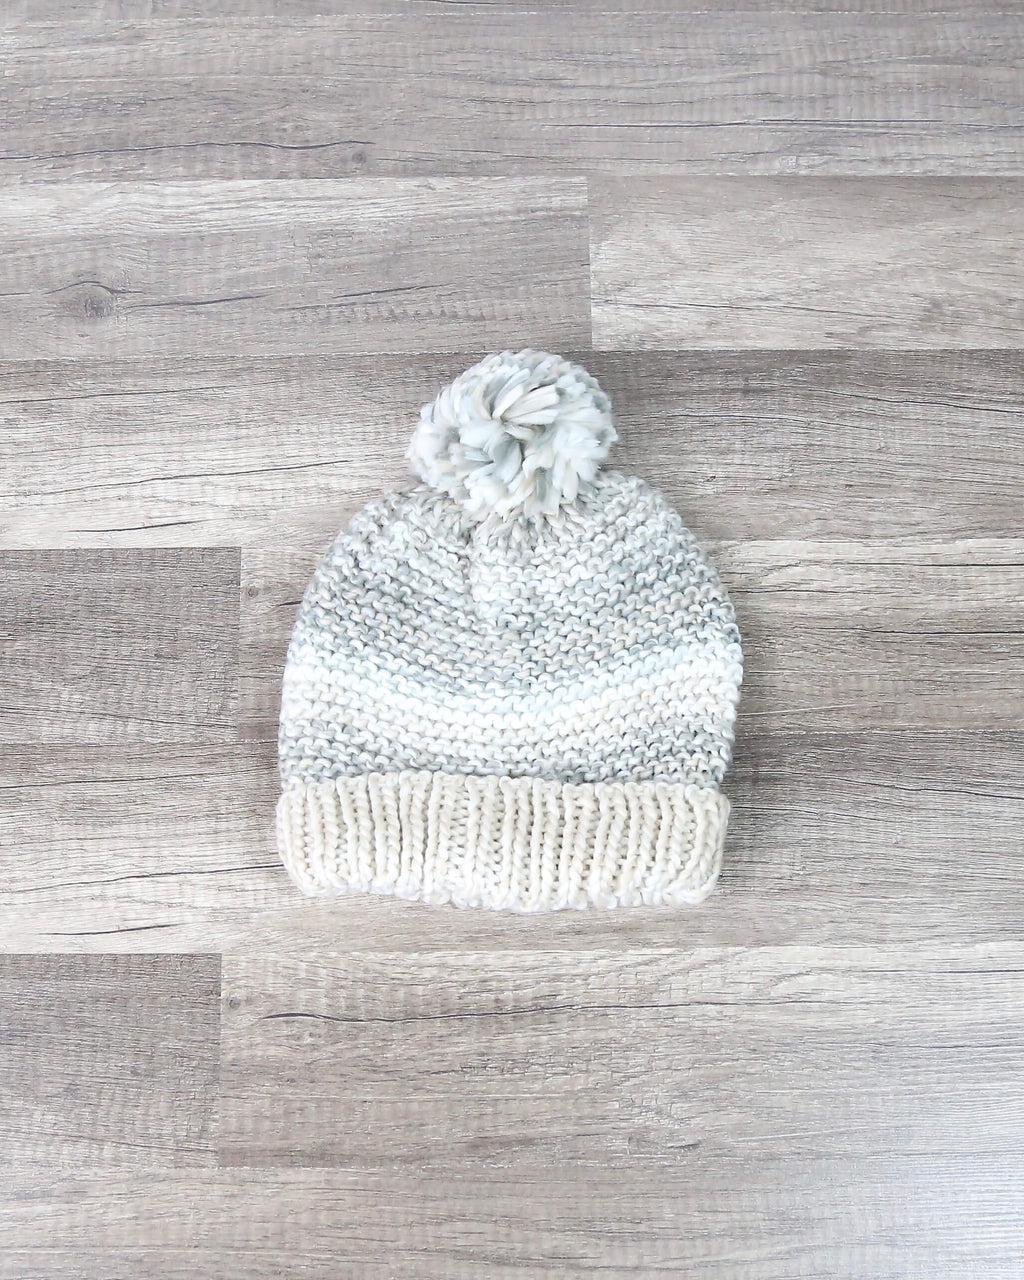 C.C. Beanie - Pom Pom Stripe Beanie in More Colors